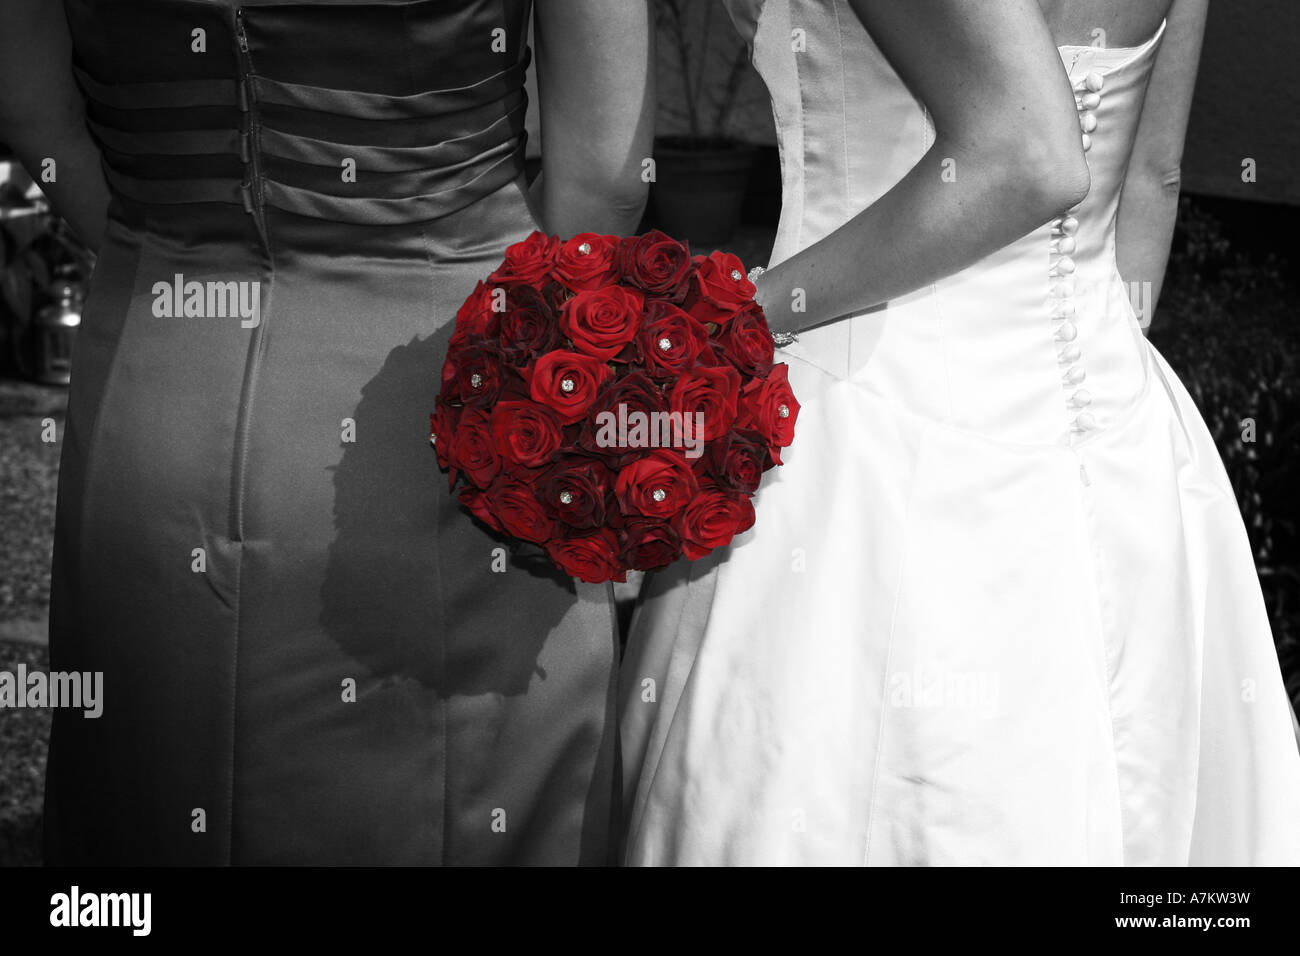 A Bride And Her Bridesmaid In Black And White With Vibrant Red Rose